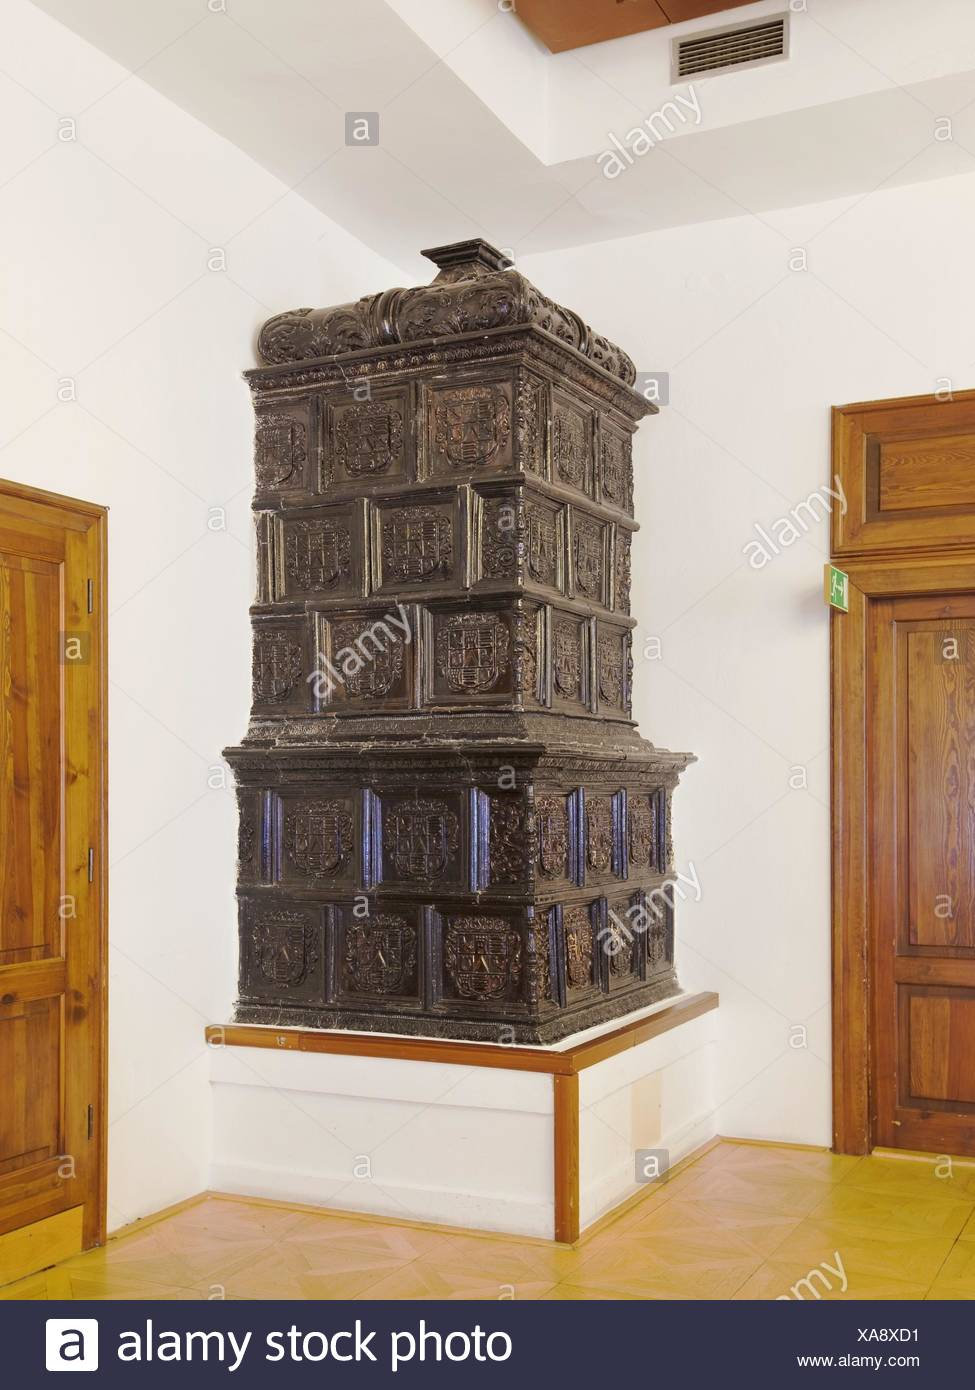 Ornate antique  stove in the corner of a room Stock Photo